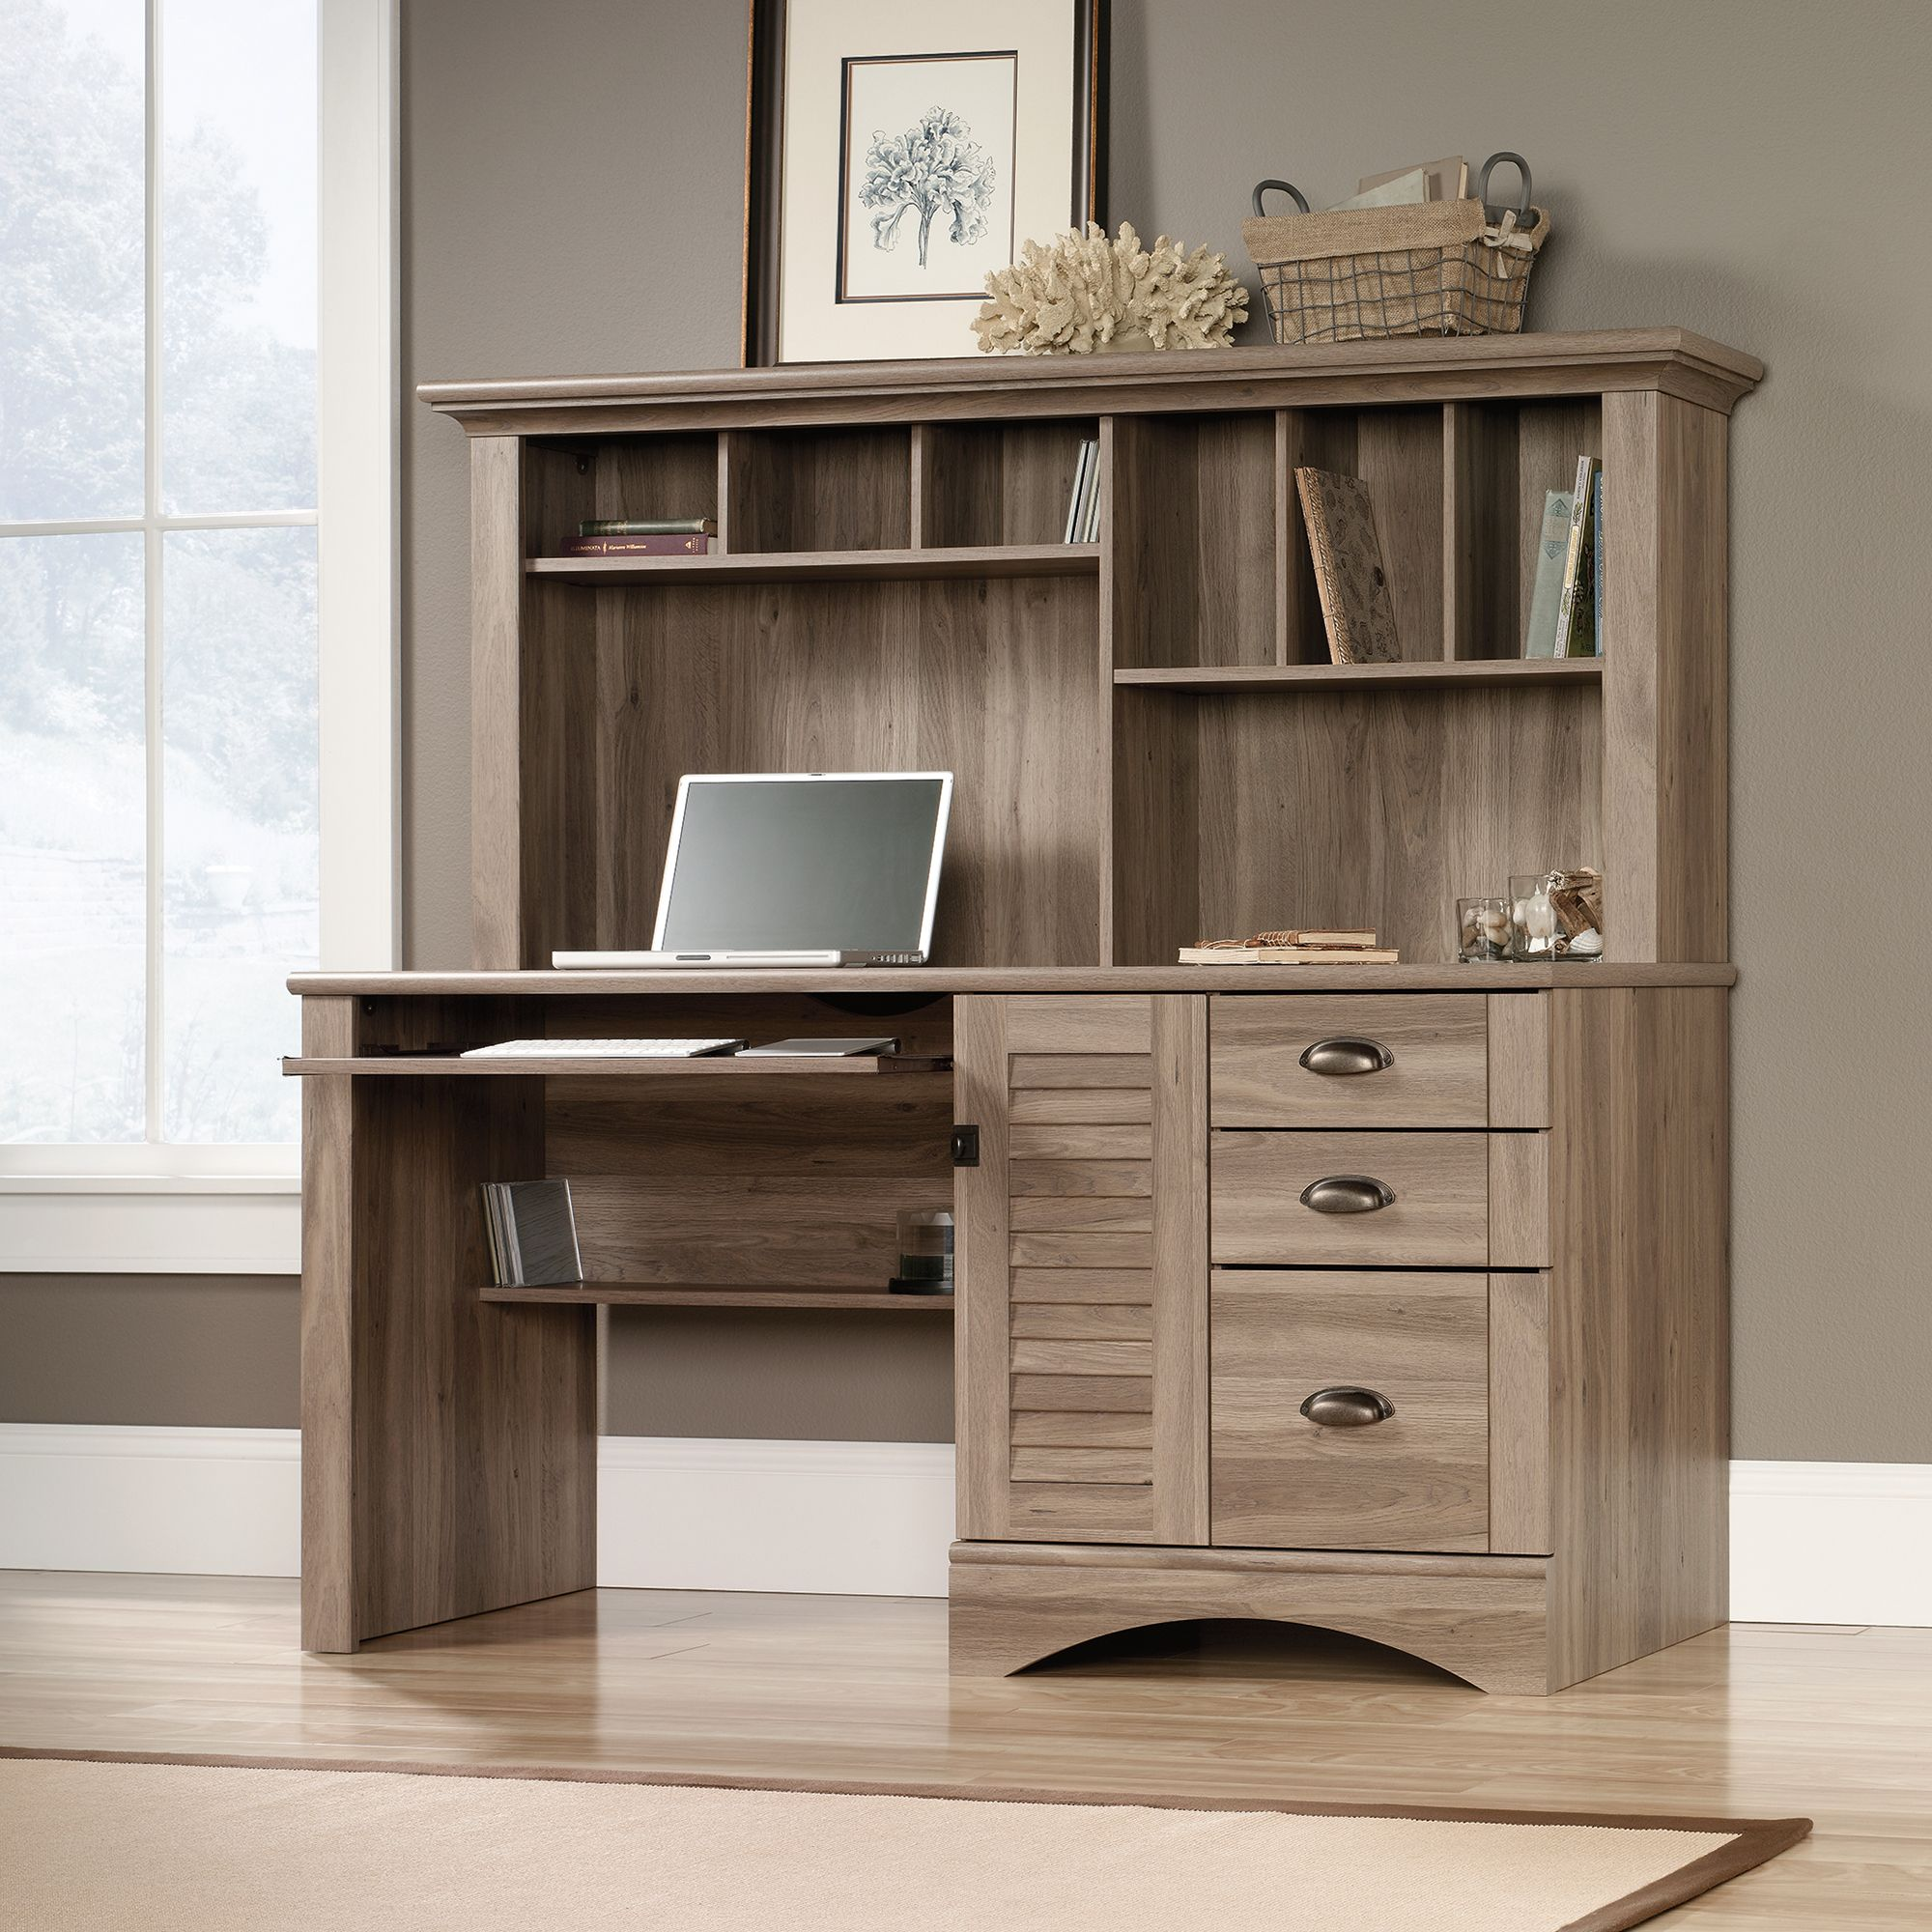 puter Desk With Hutch